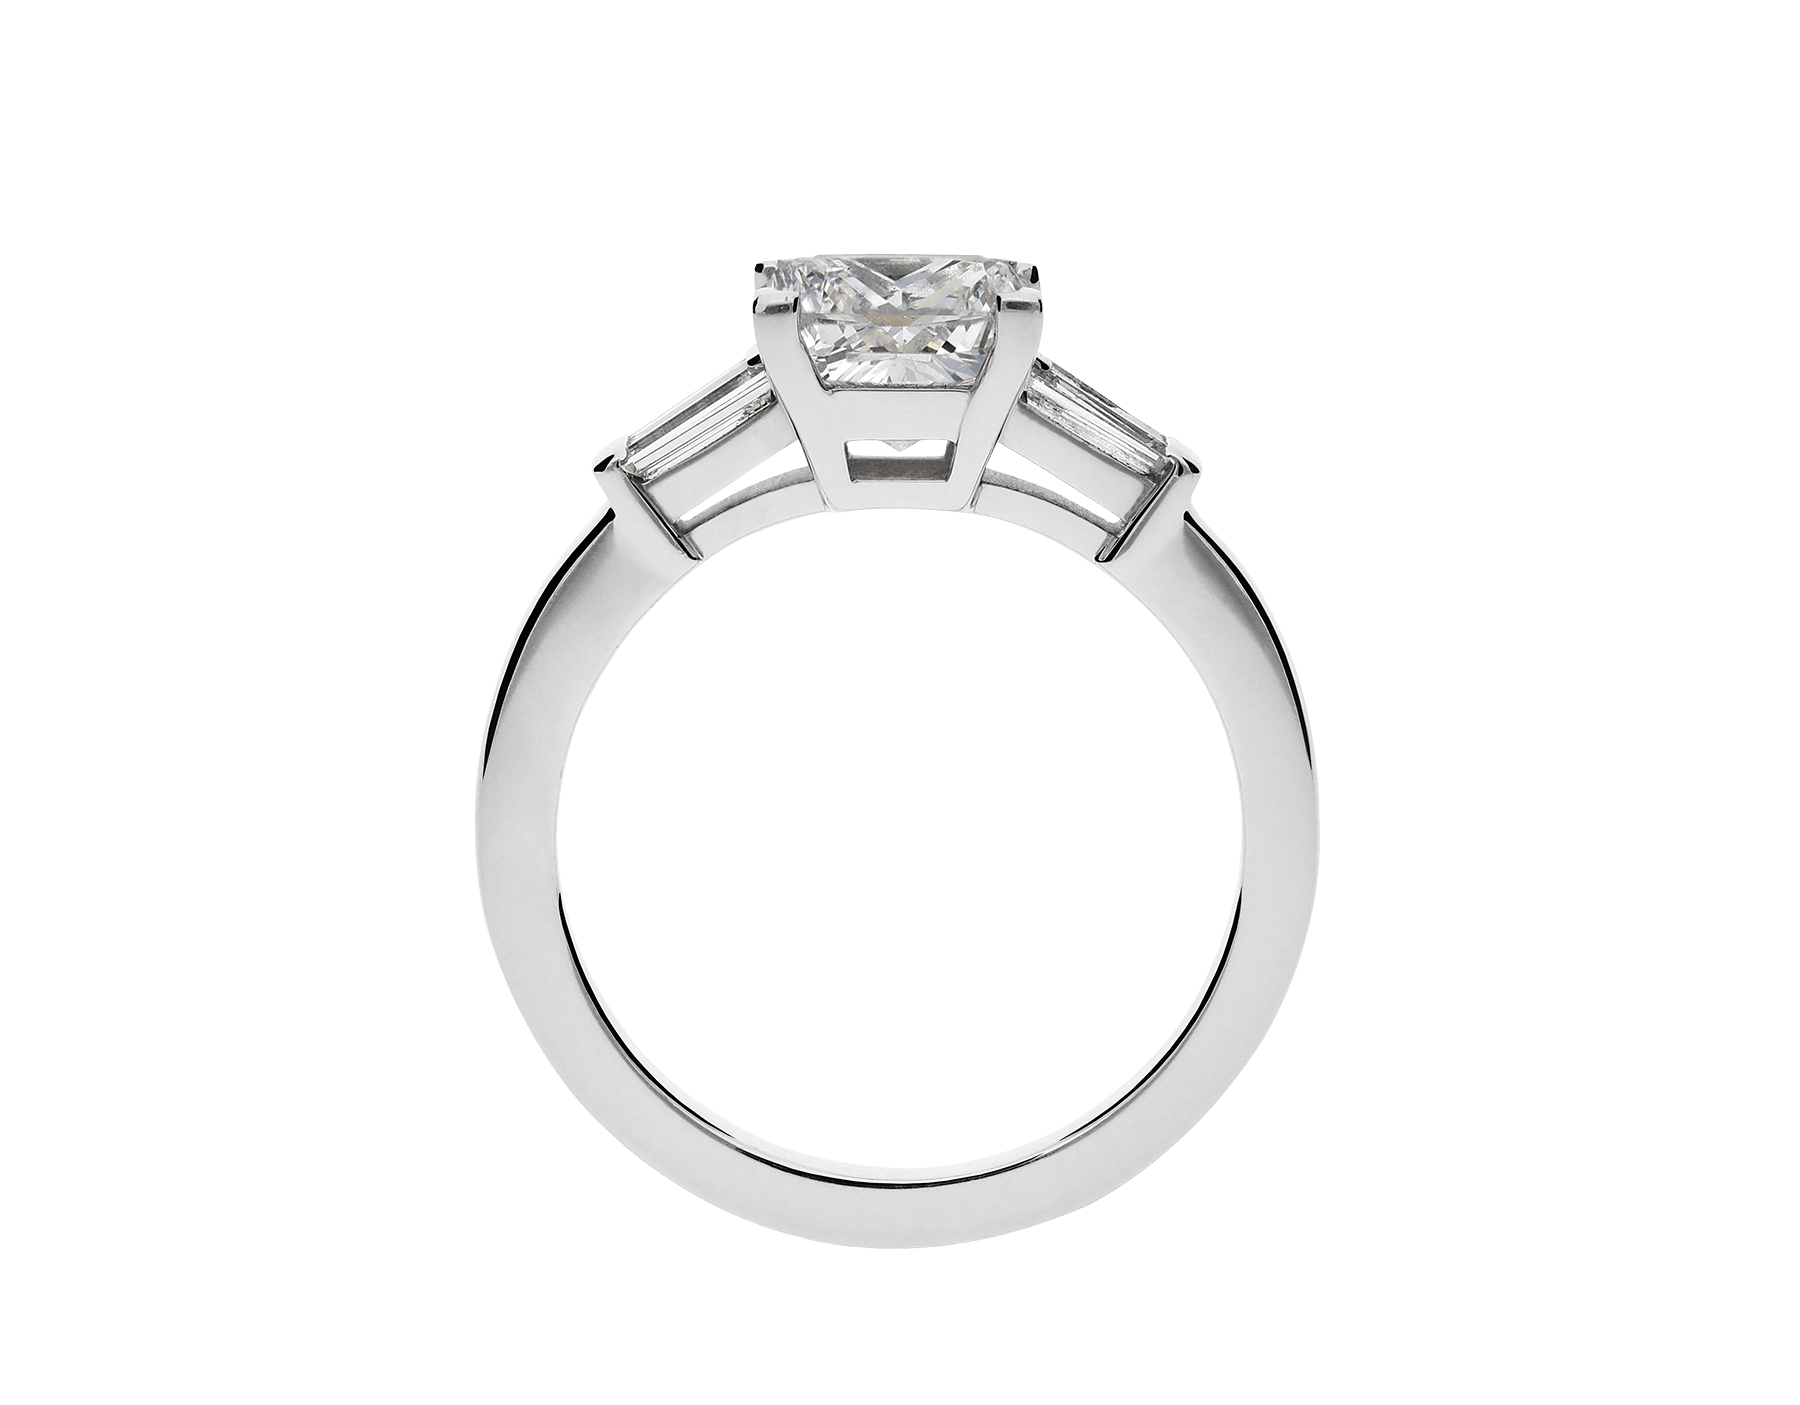 Griffe solitaire ring in platinum with princess cut diamond and two side diamonds. Available in 1 ct. A classic setting that allows the beauty and the pureness of the solitaire diamond to assert itself. 338560 image 3